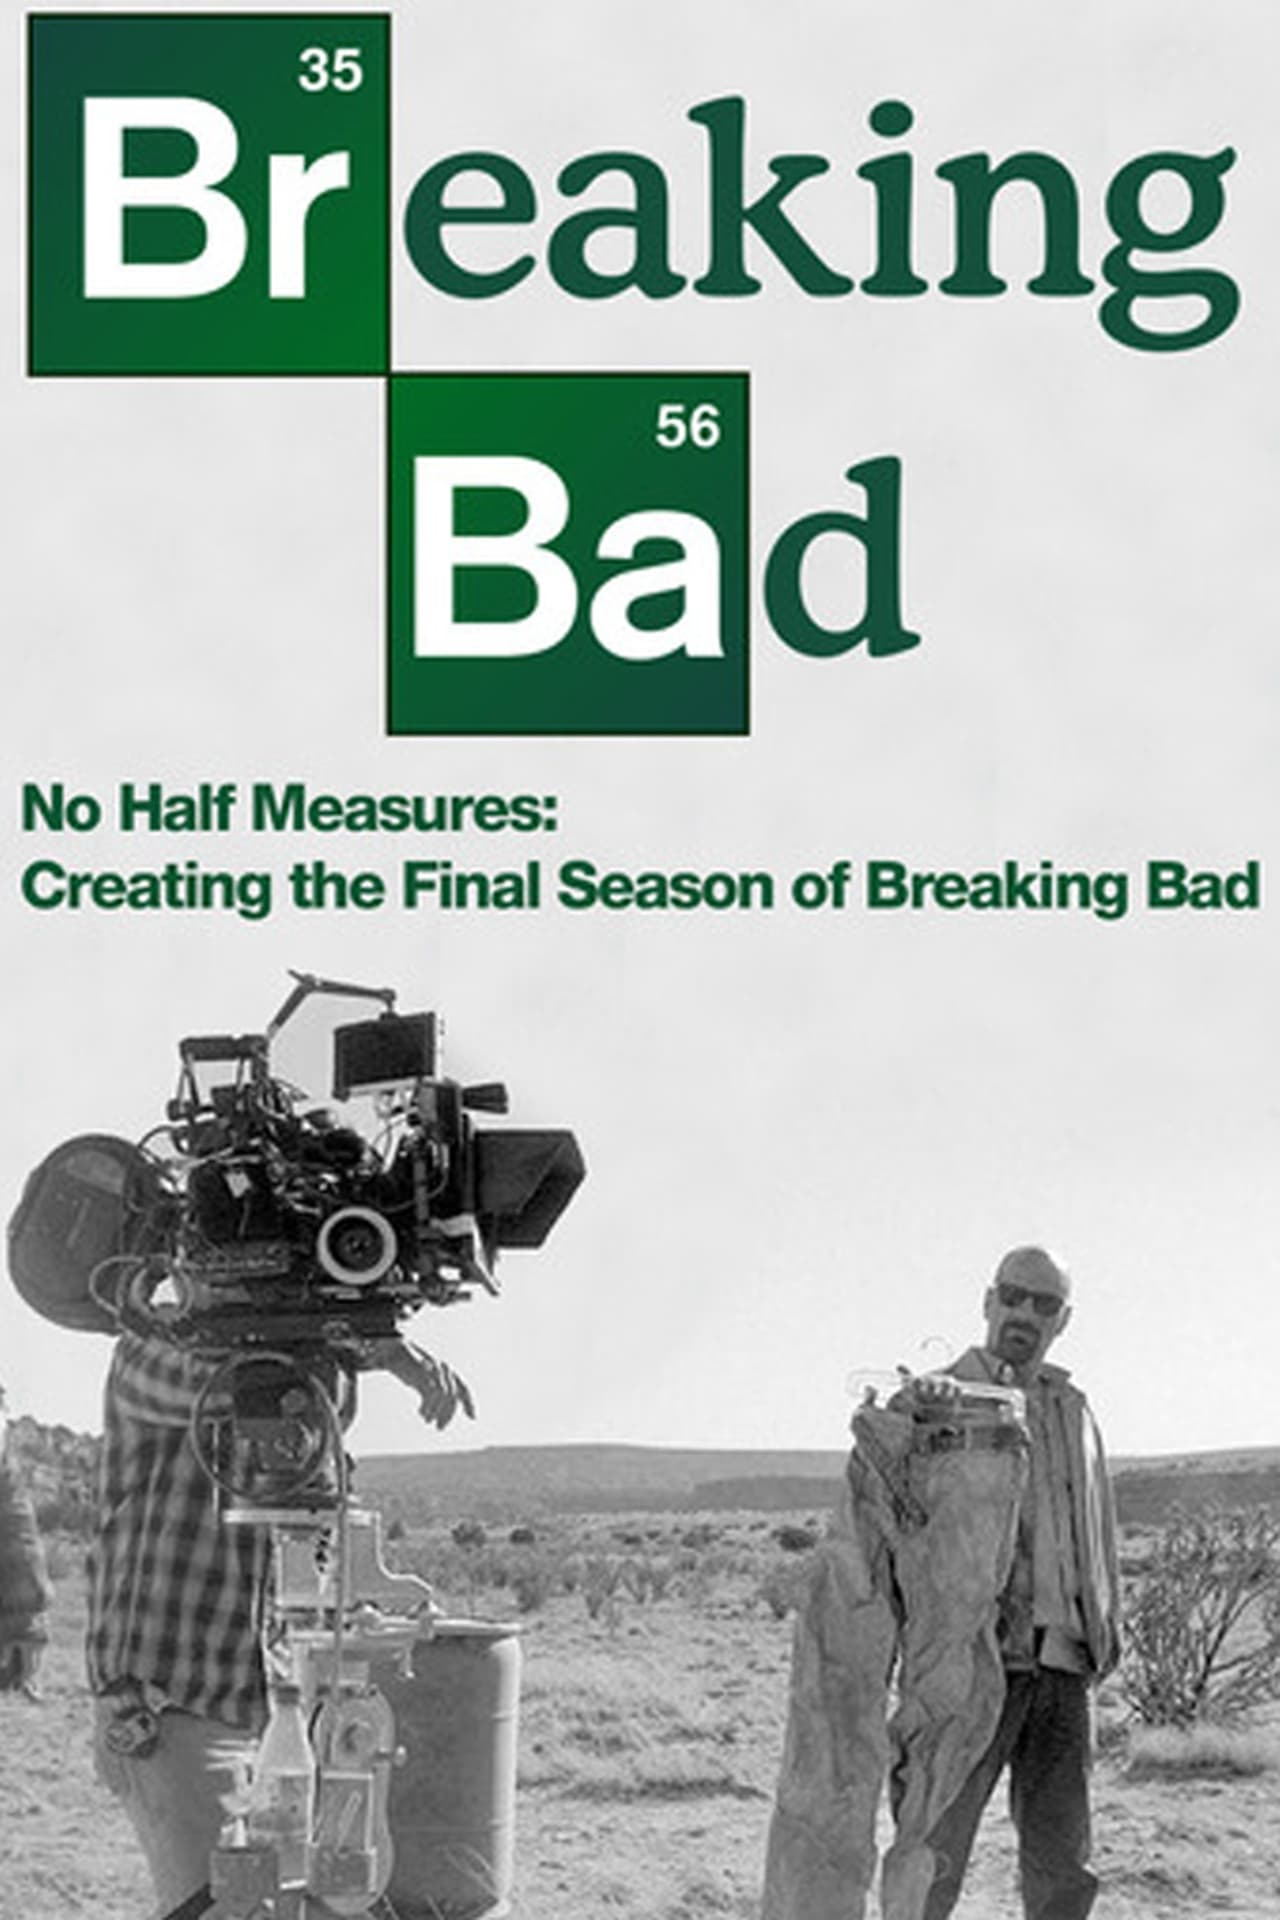 No Half Measures: Creating the Final Season of Breaking Bad (2013)